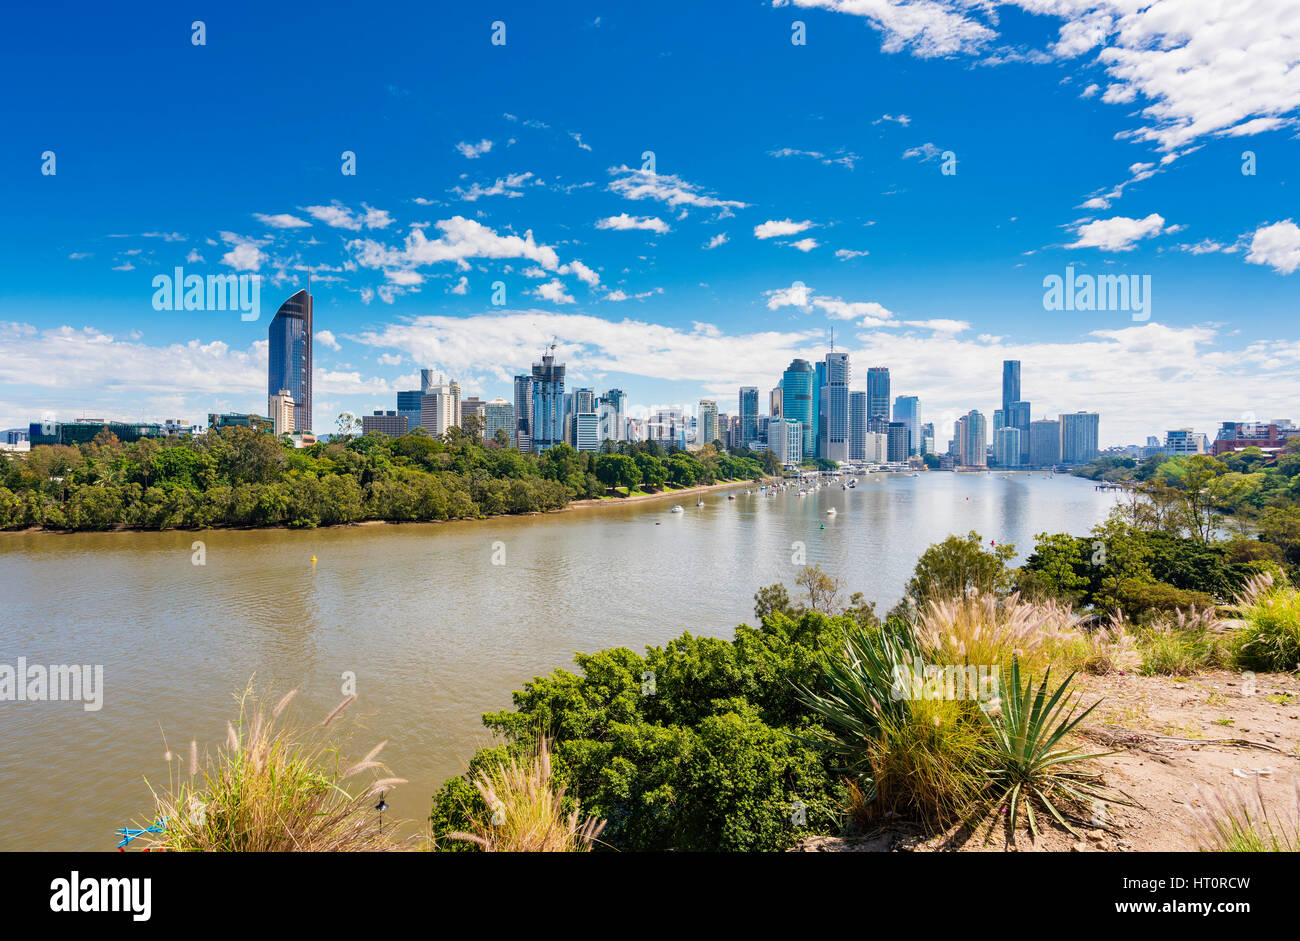 View of Brisbane city skyline and Brisbane river in daytime - Stock Image